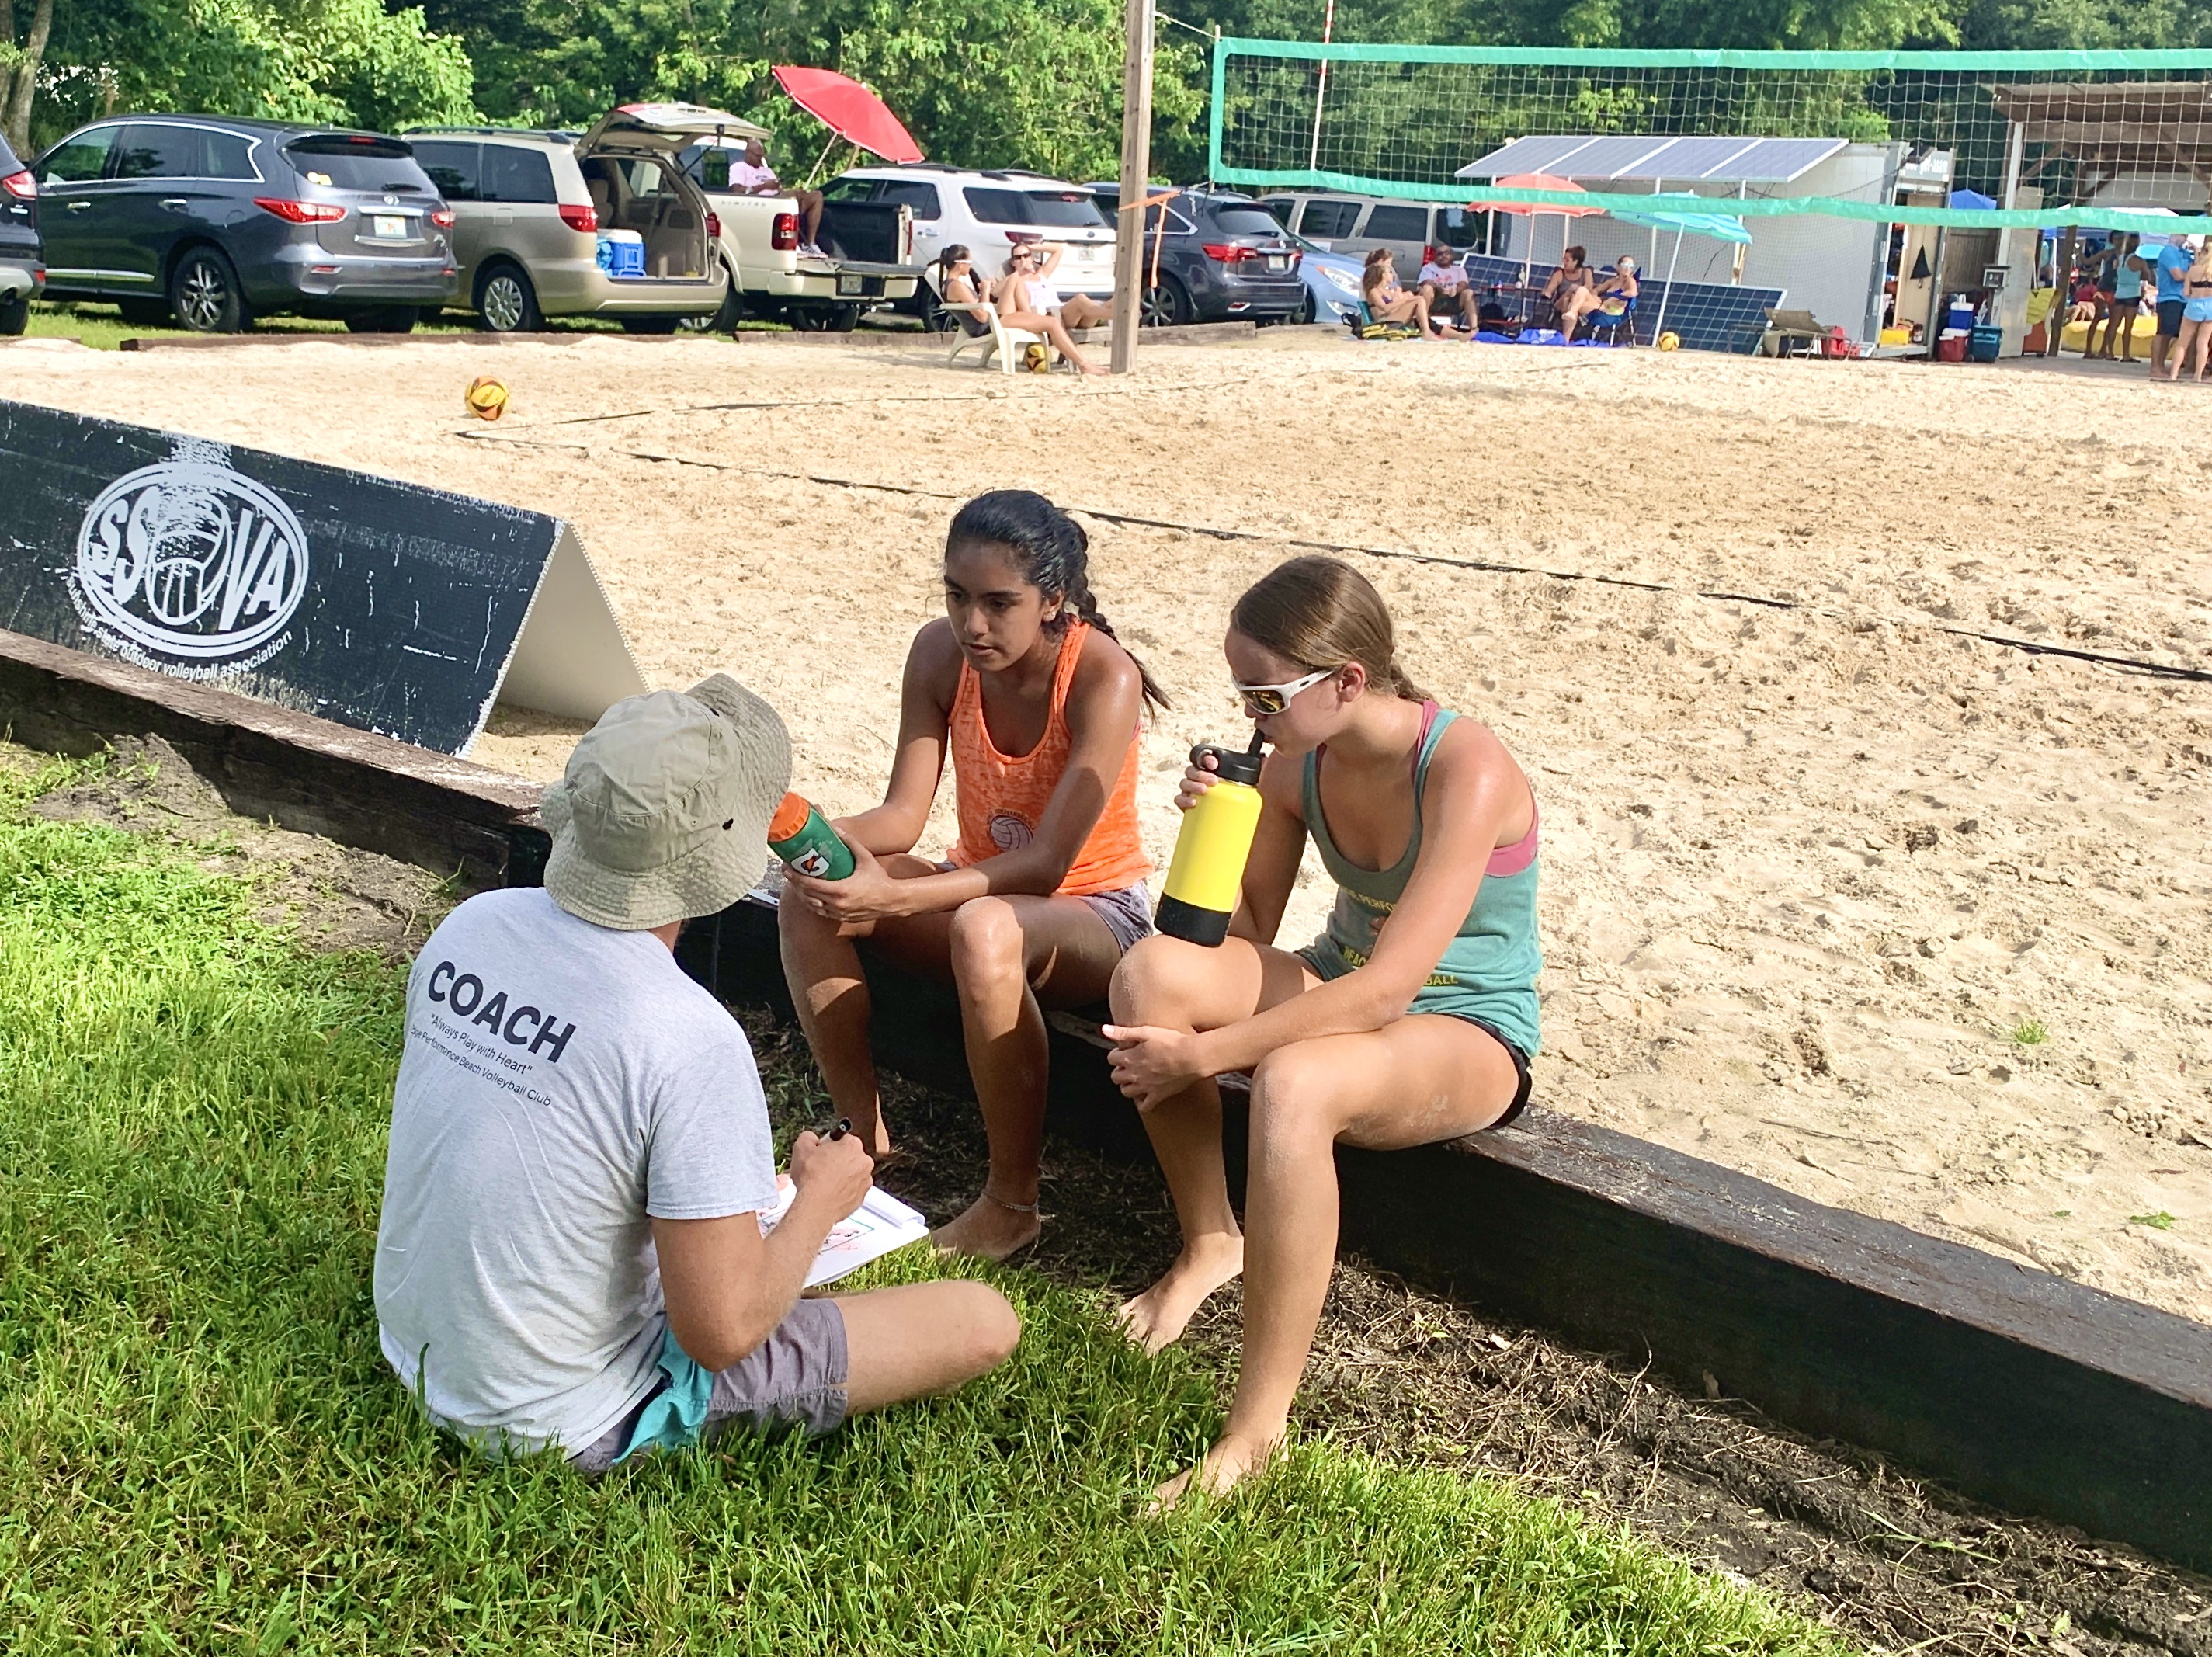 https://www.flbeachvolleyballseries.com